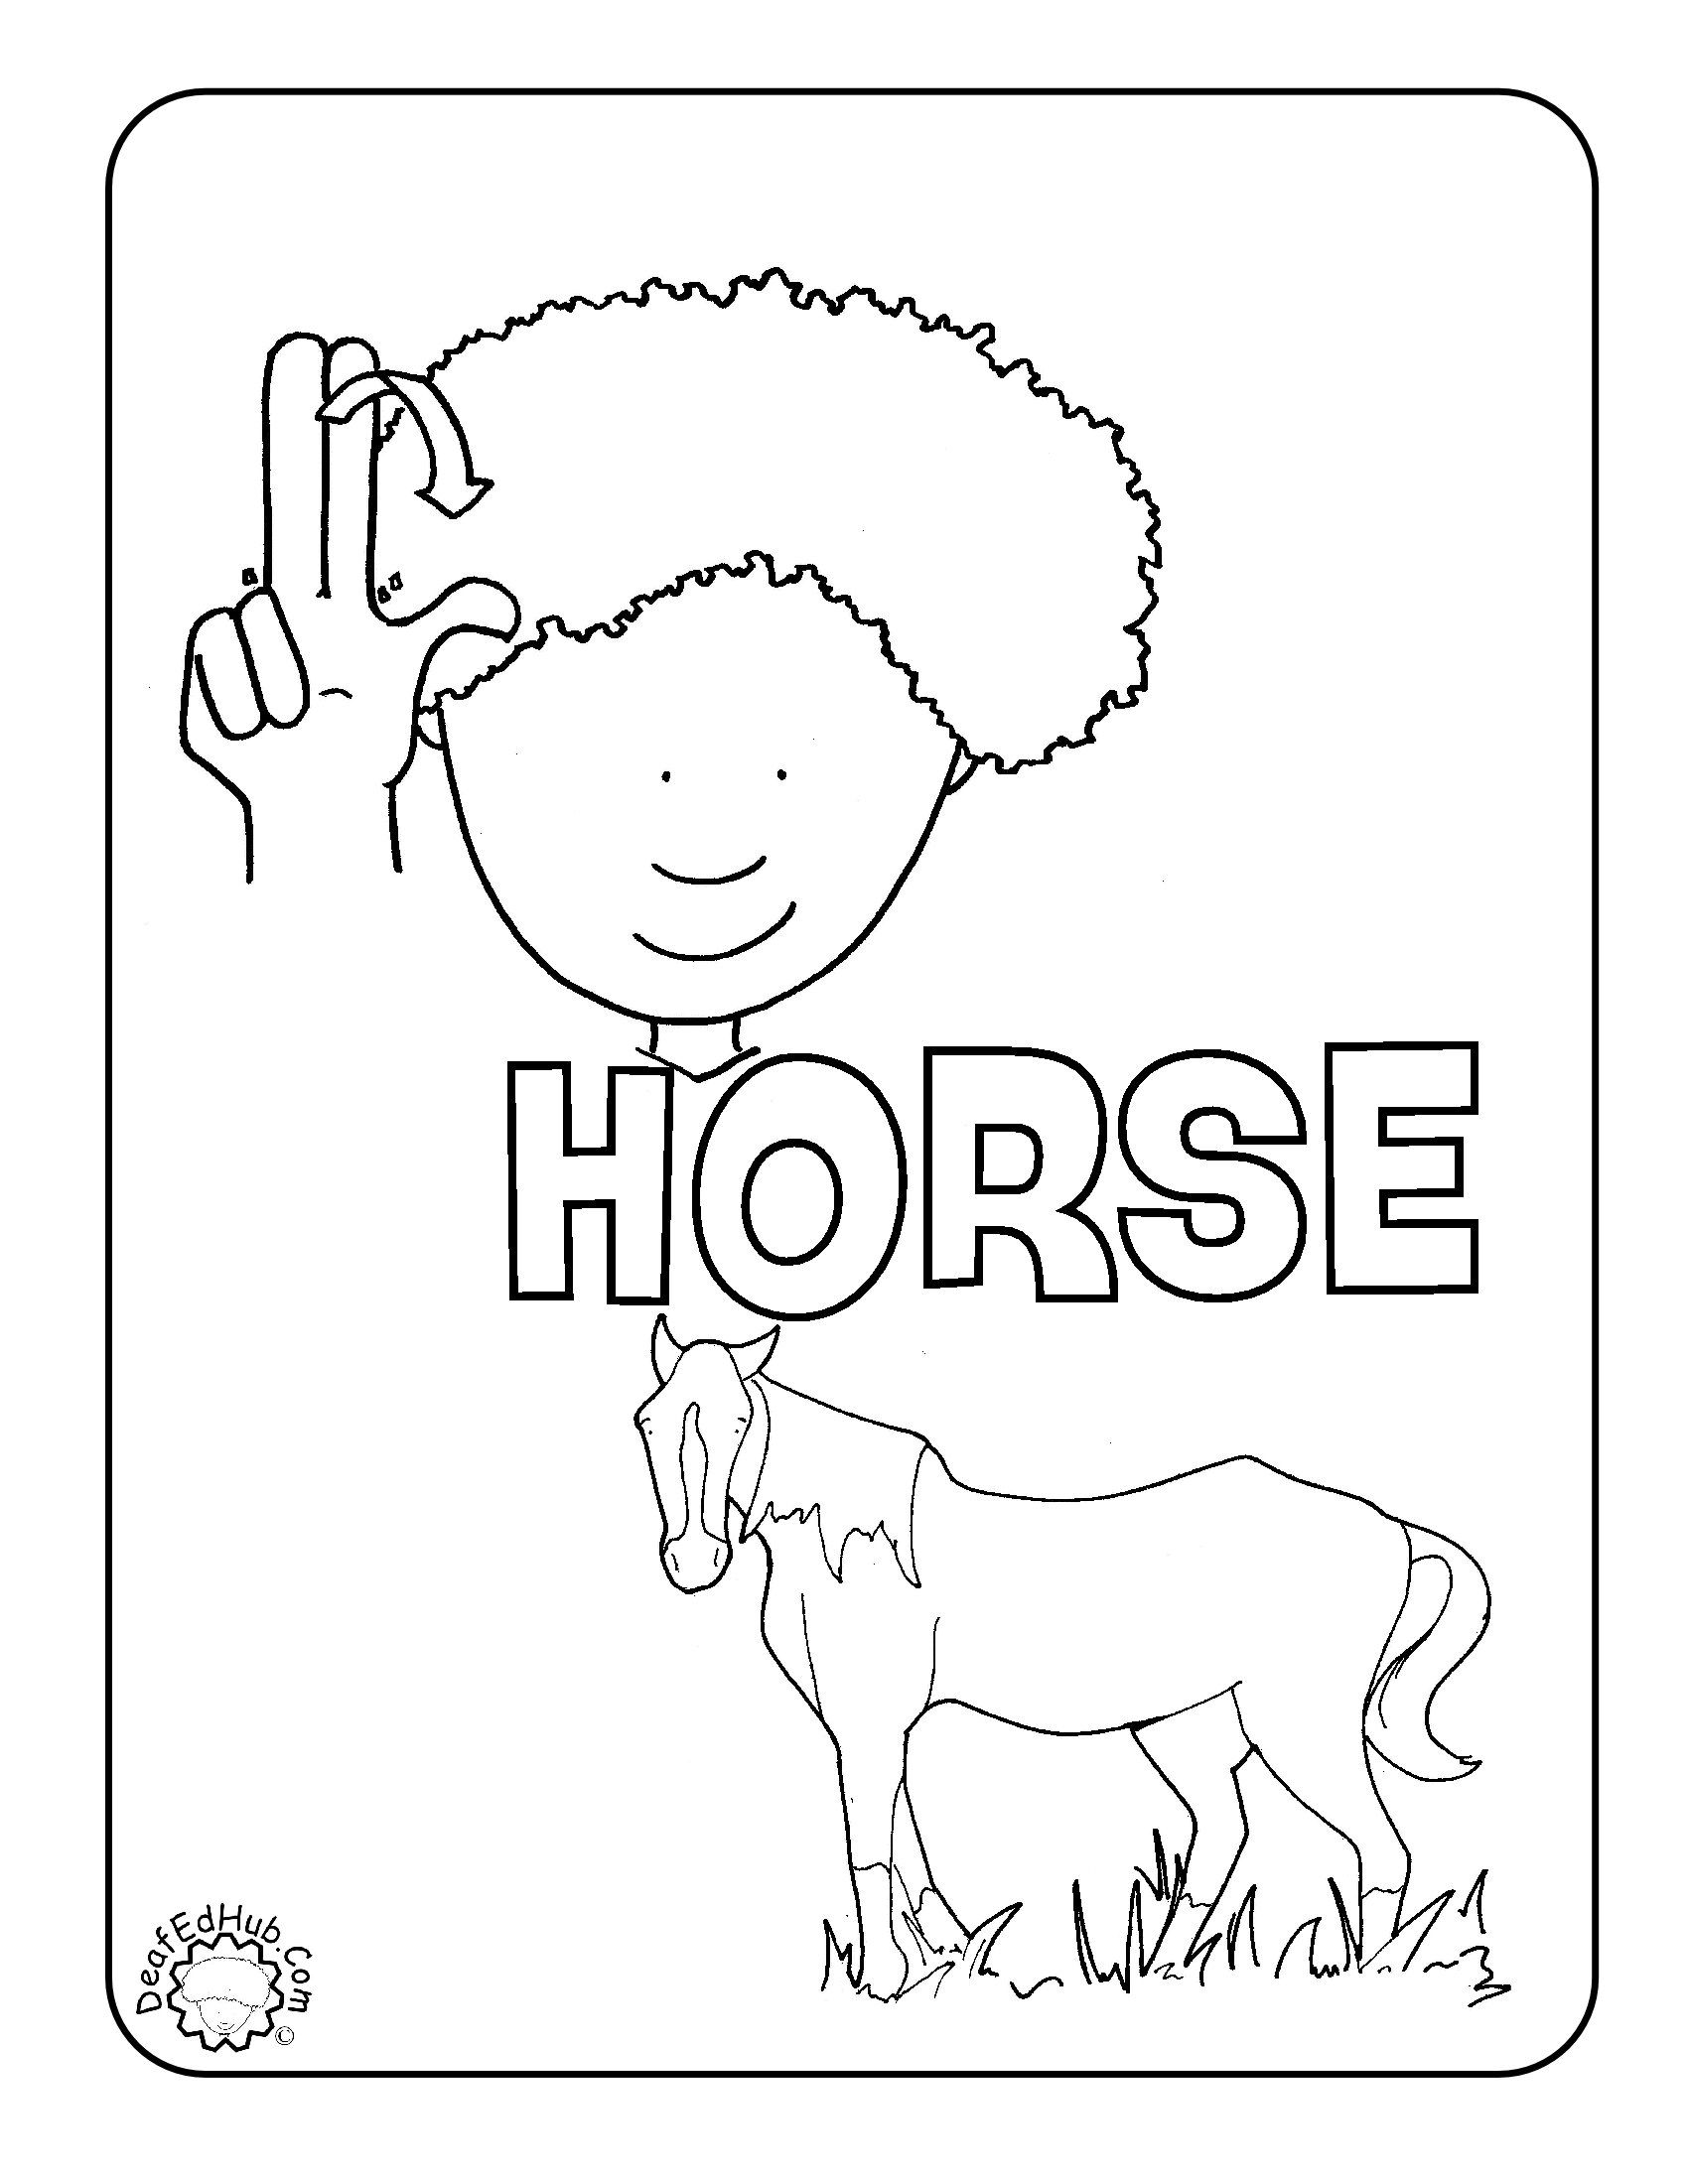 asl coloring page for the sign horse i just posted 19 more coloring pages